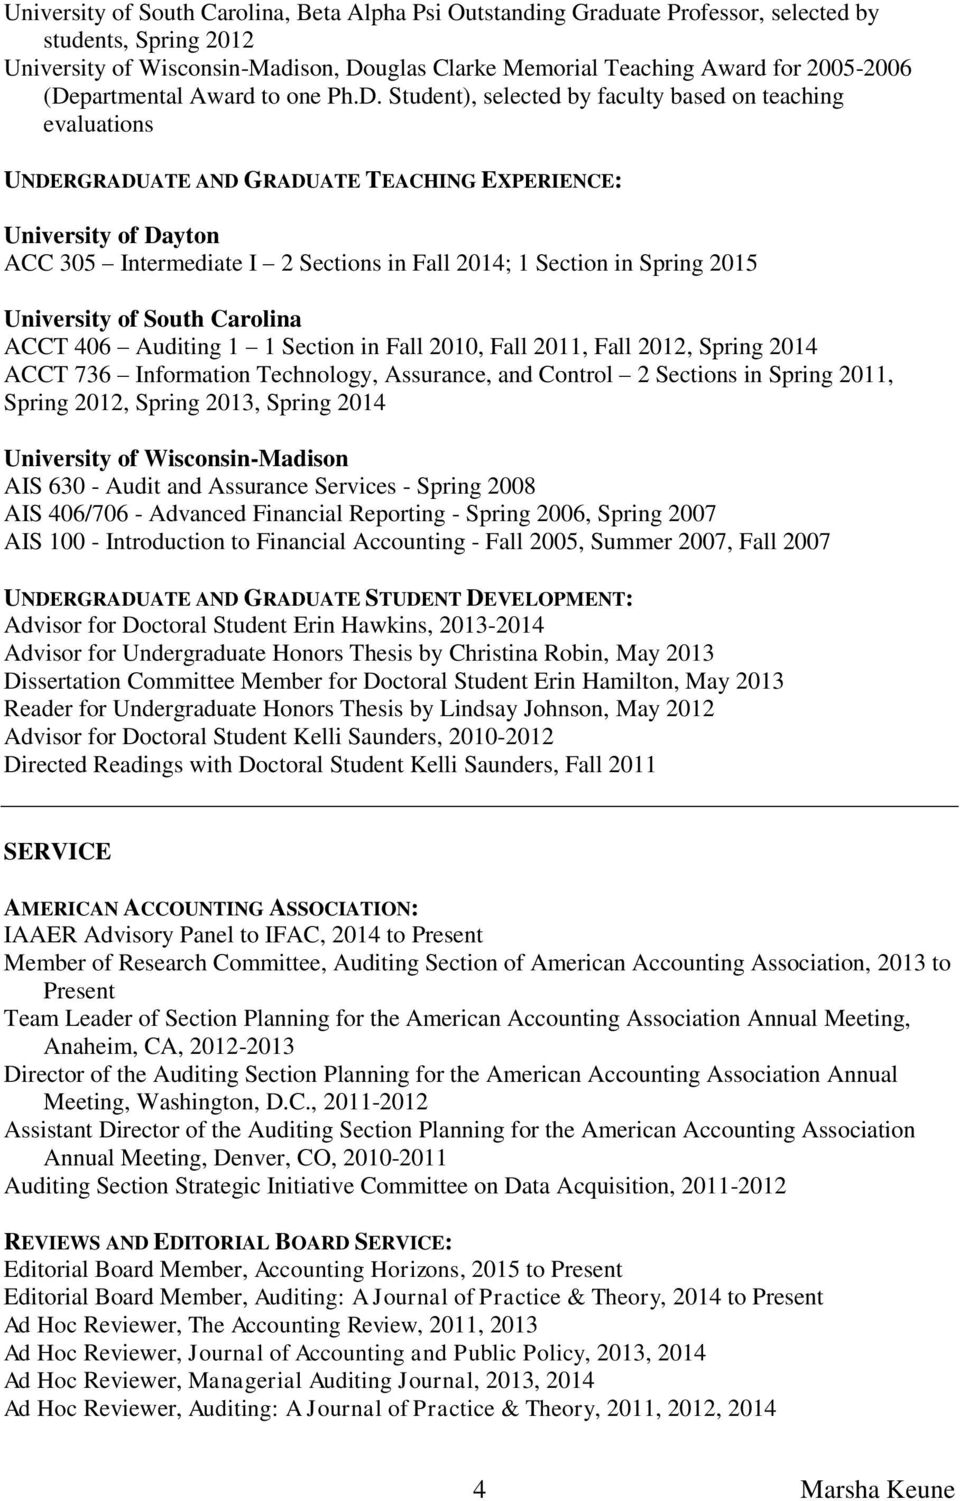 Fall 2014; 1 Section in Spring 2015 University of South Carolina ACCT 406 Auditing 1 1 Section in Fall 2010, Fall 2011, Fall 2012, Spring 2014 ACCT 736 Information Technology, Assurance, and Control